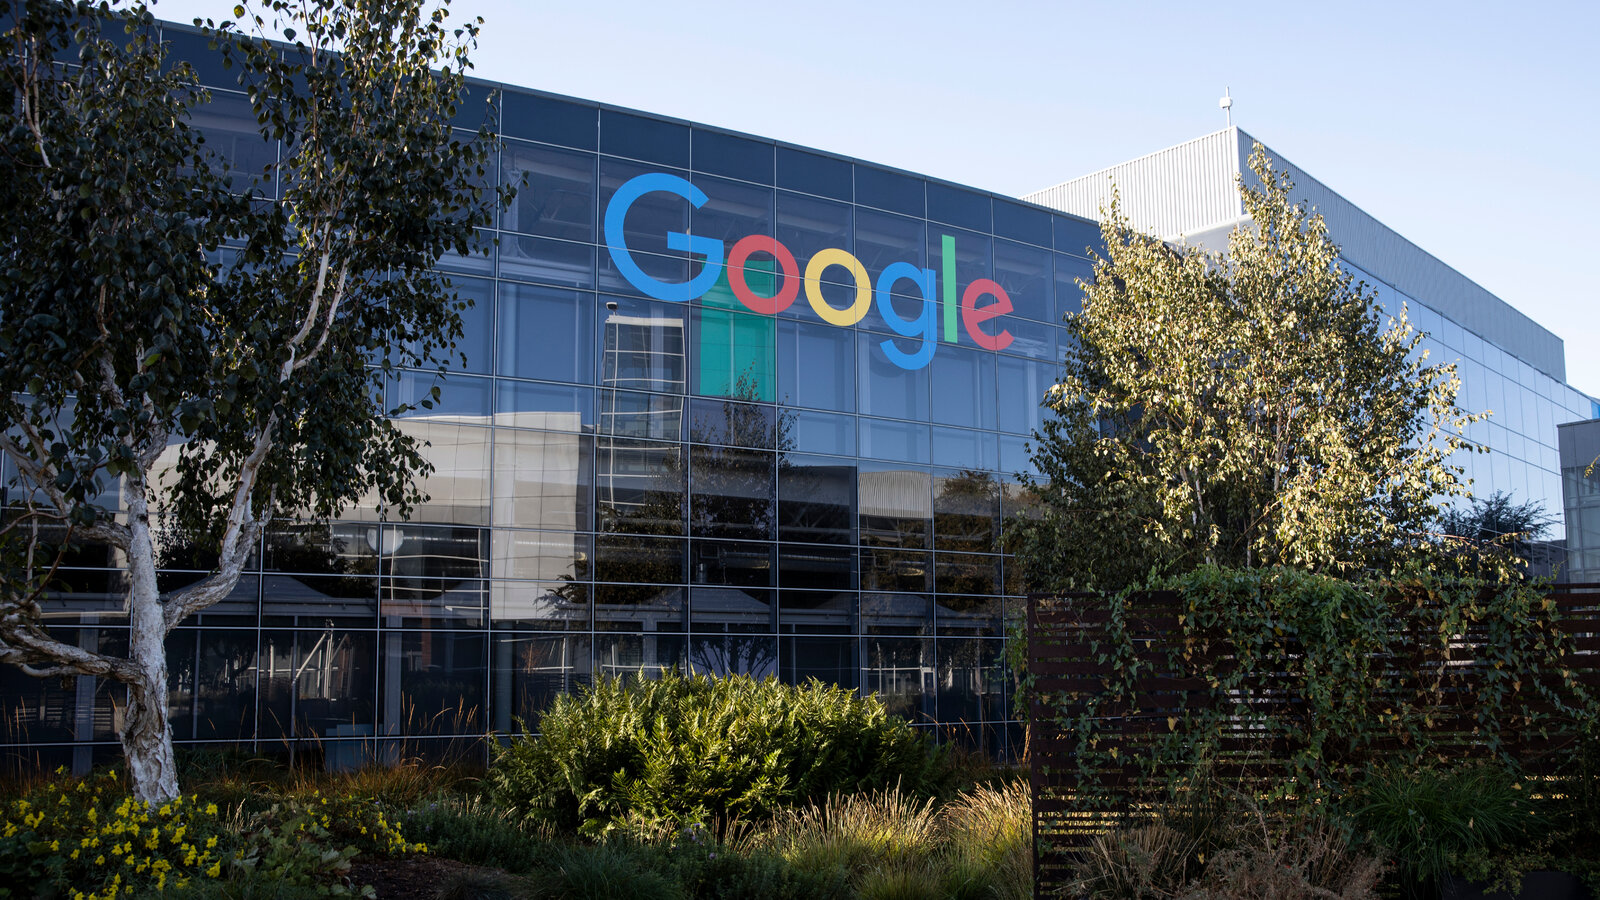 Google Introduces Special Feature To Aid Vaccine-Finding